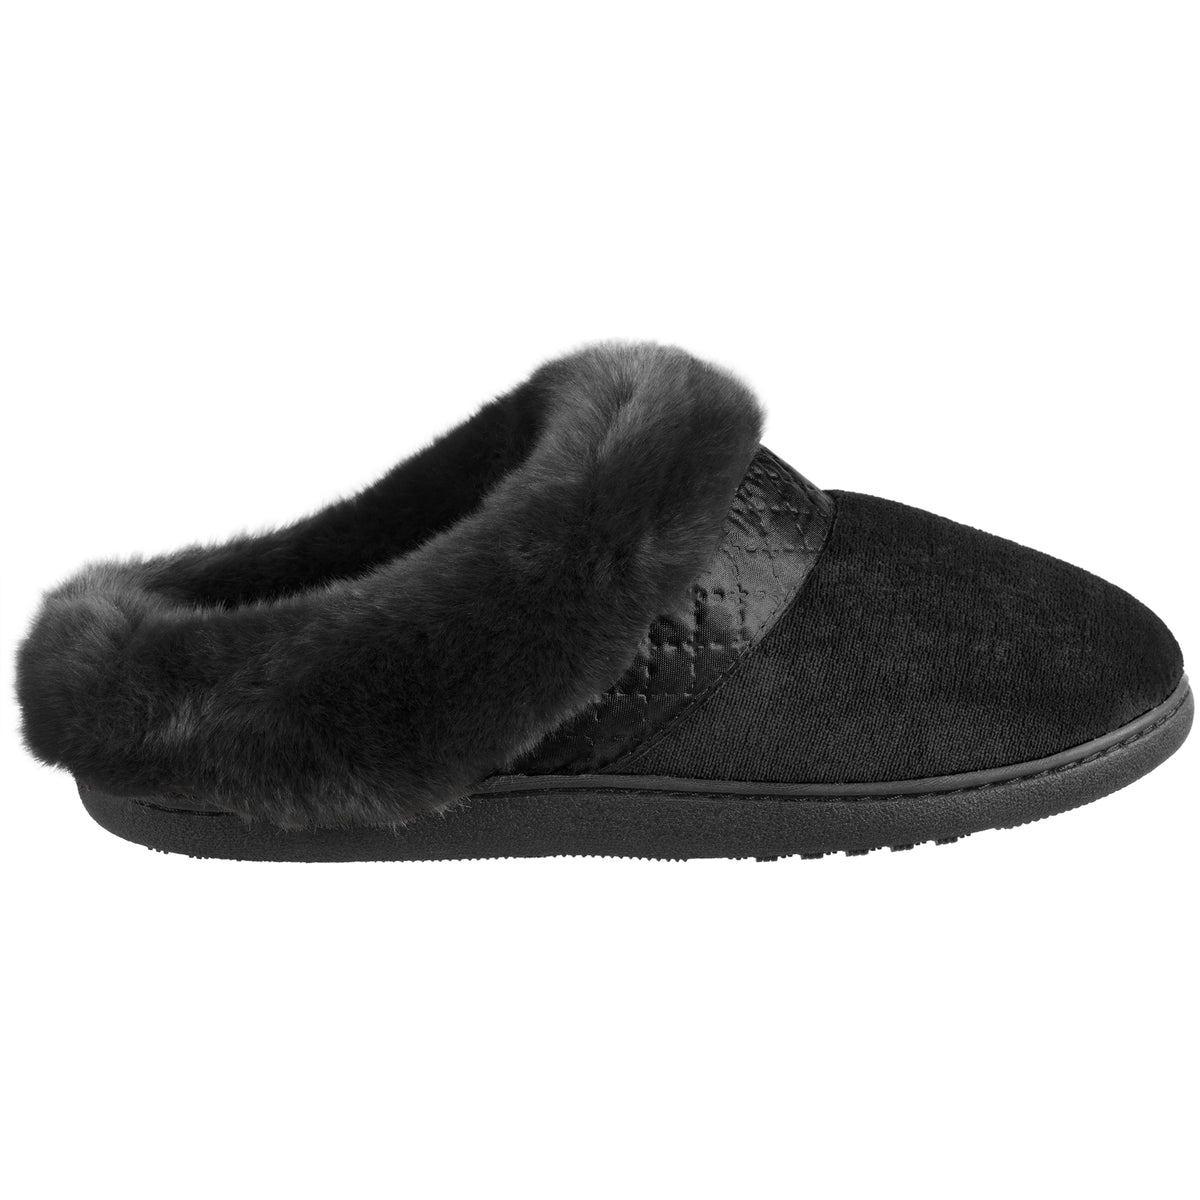 Women's Velour Diane Hoodback Slippers